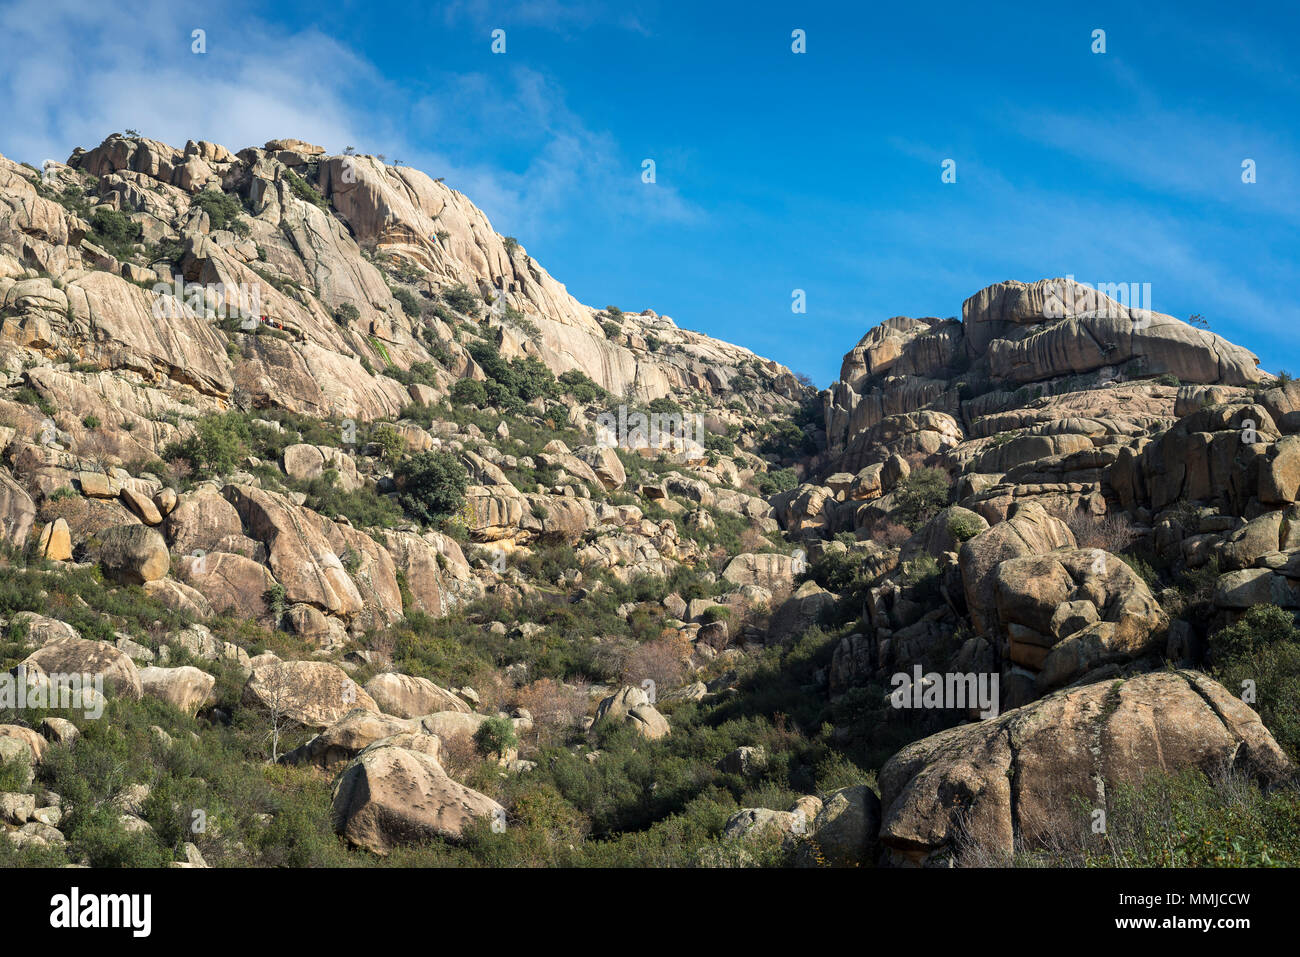 Granitic rock formations in La Pedriza, Guadarrama Mountains National Park, province of Madrid, Spain Stock Photo